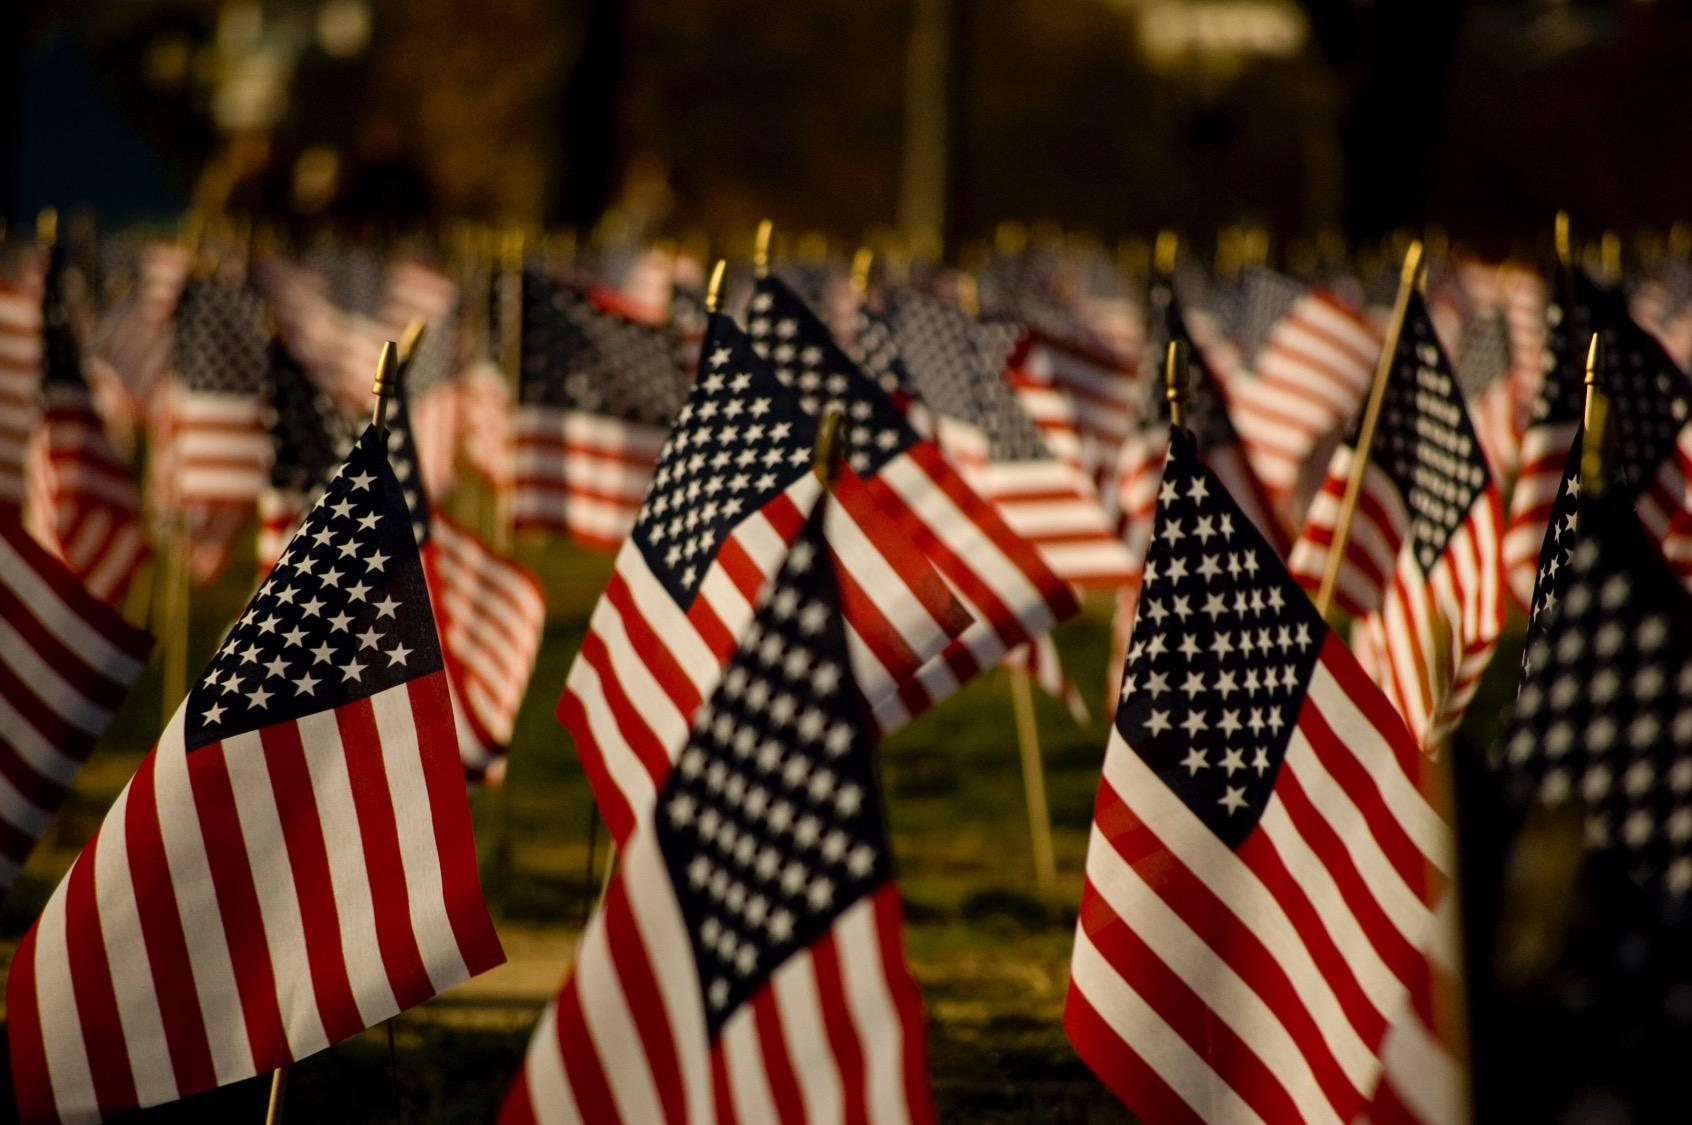 On Nov. 10, 2016 the social studies will be honoring Veterans Day by showing a video recognizing veterans that are special to the people of LHS.